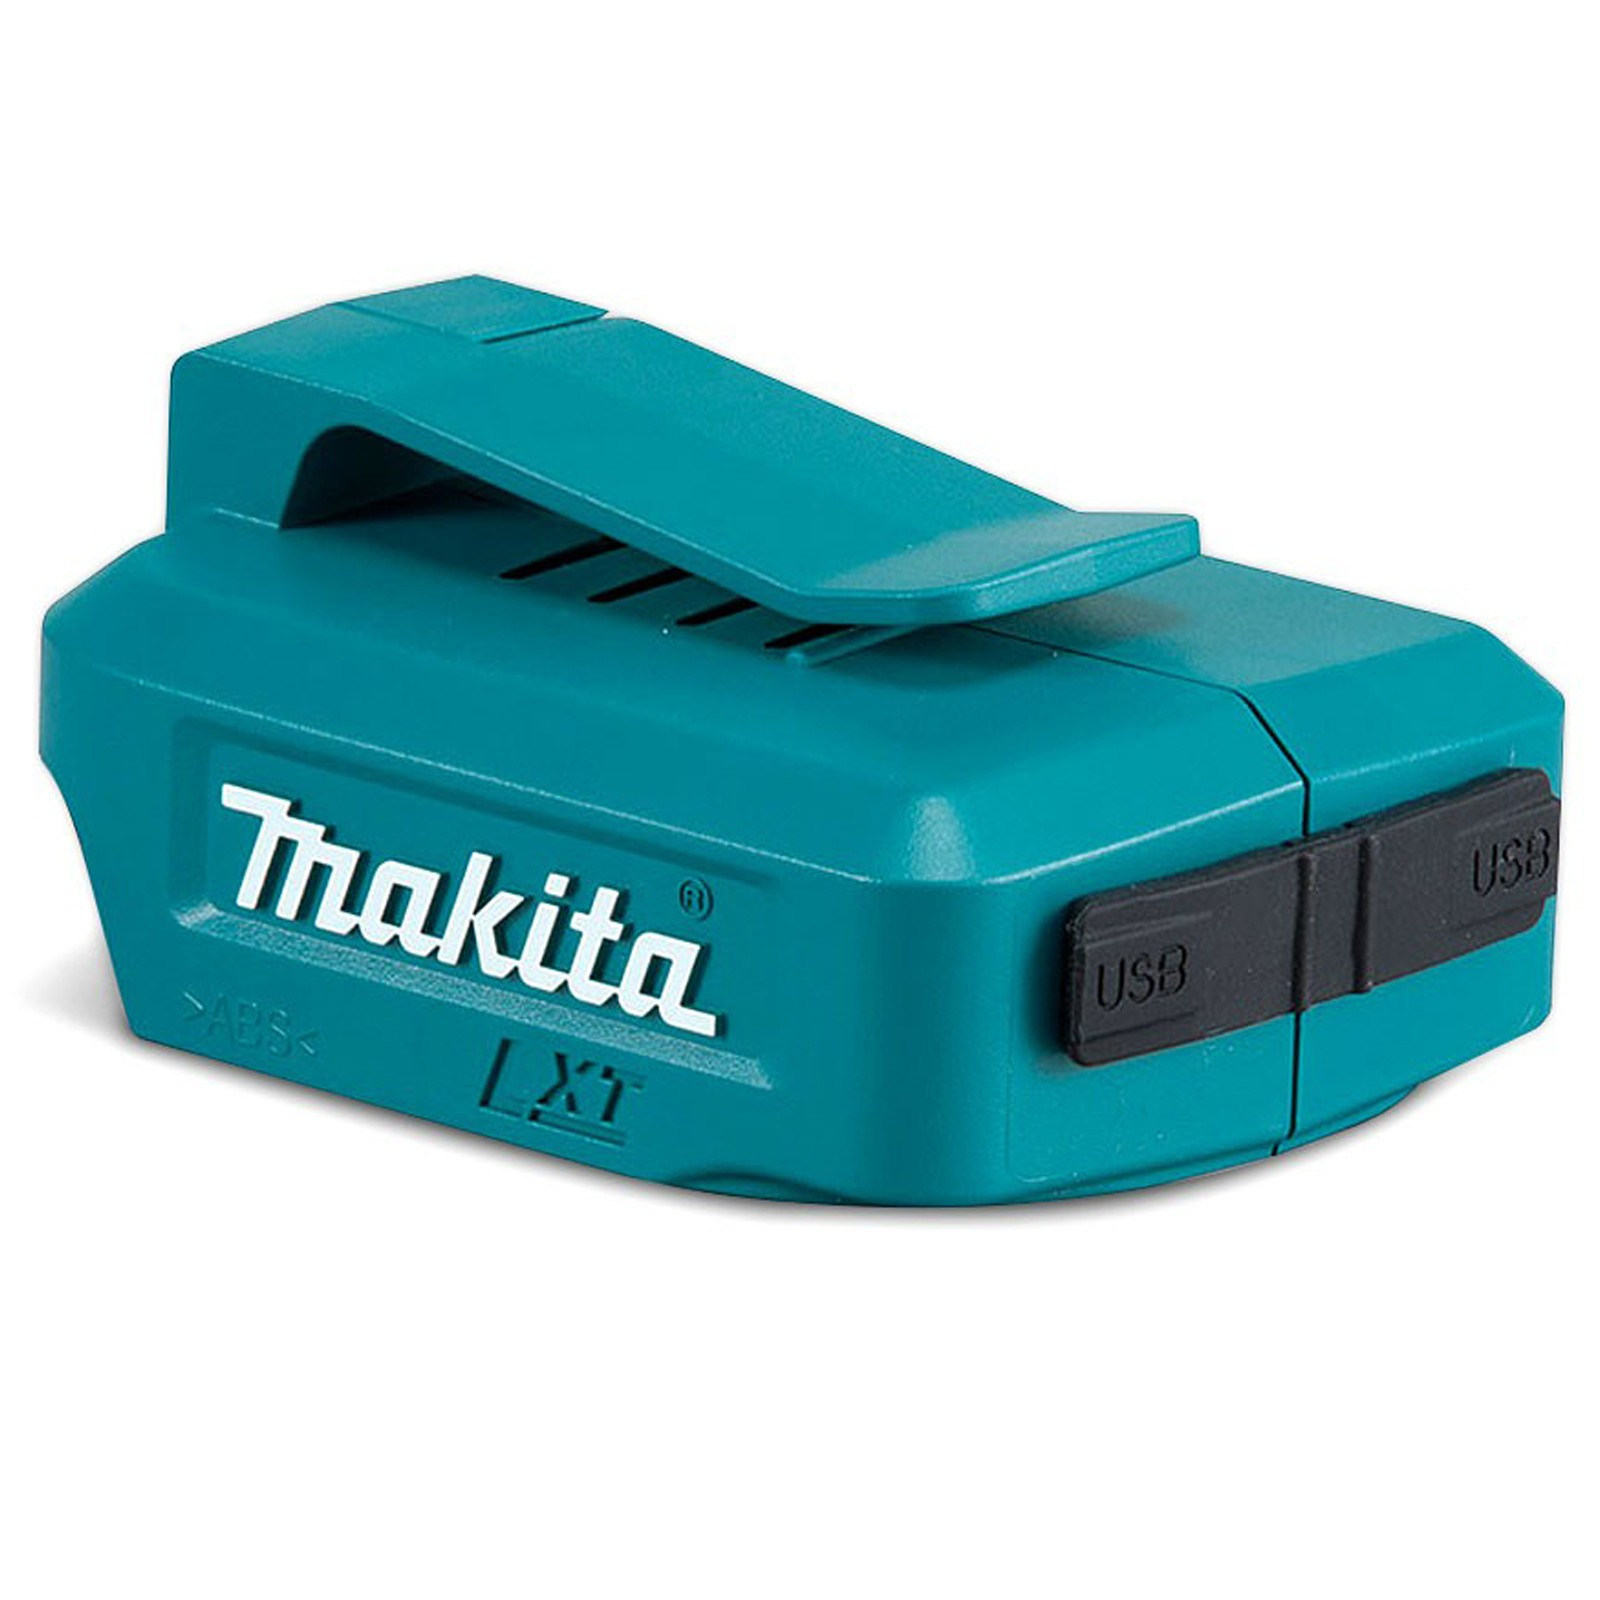 Makita Deaadp05 Usb Charging 18v Lxt Lithium Ion Battery Adapter Li On Charger Via Powertool World